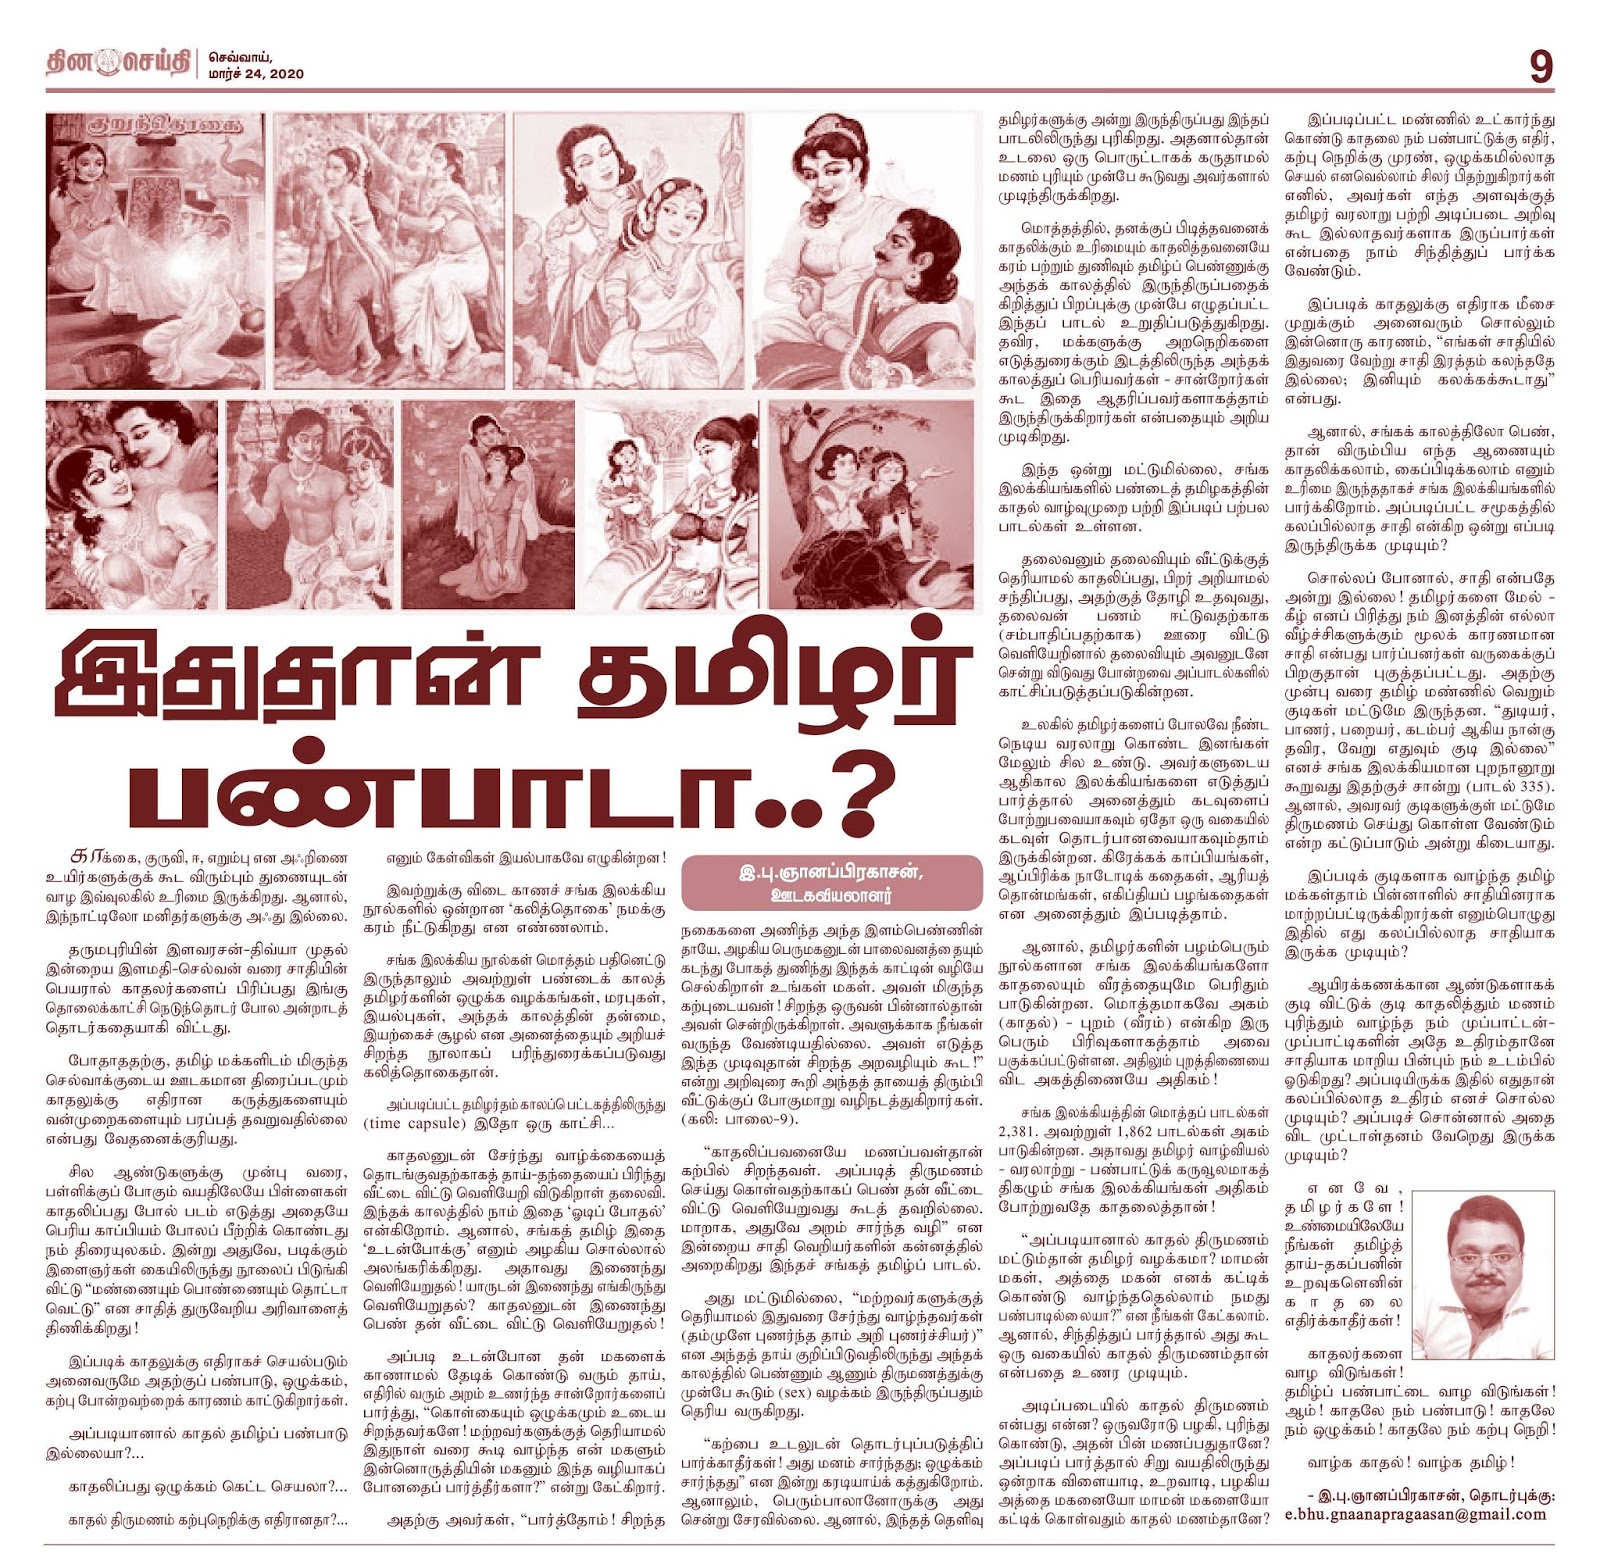 Dinacheithi format of the above article